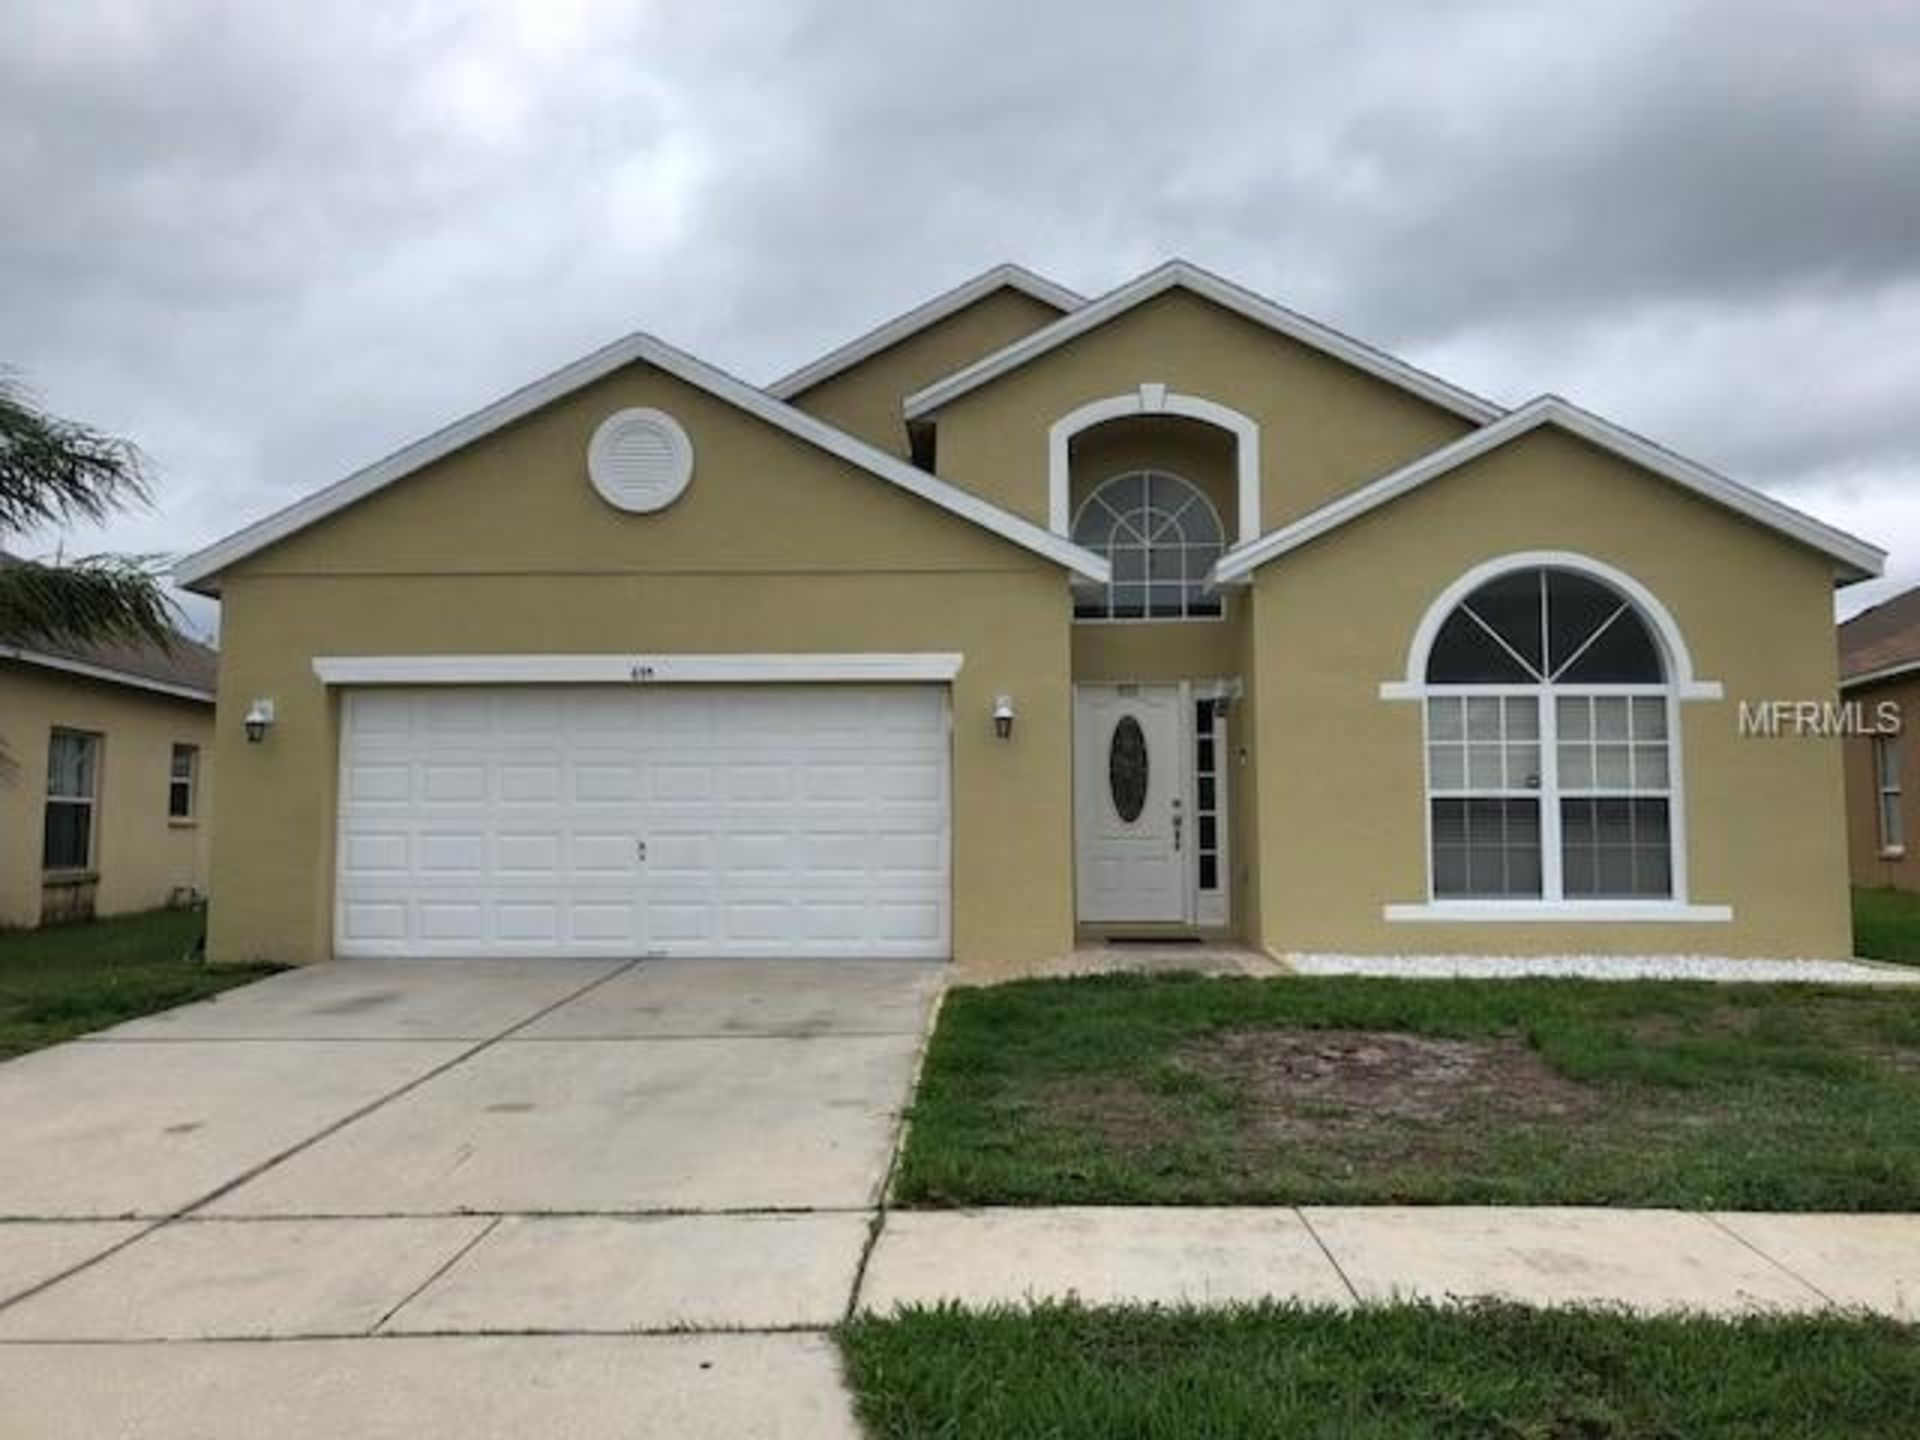 Kissimmee Open House until 1 pm!